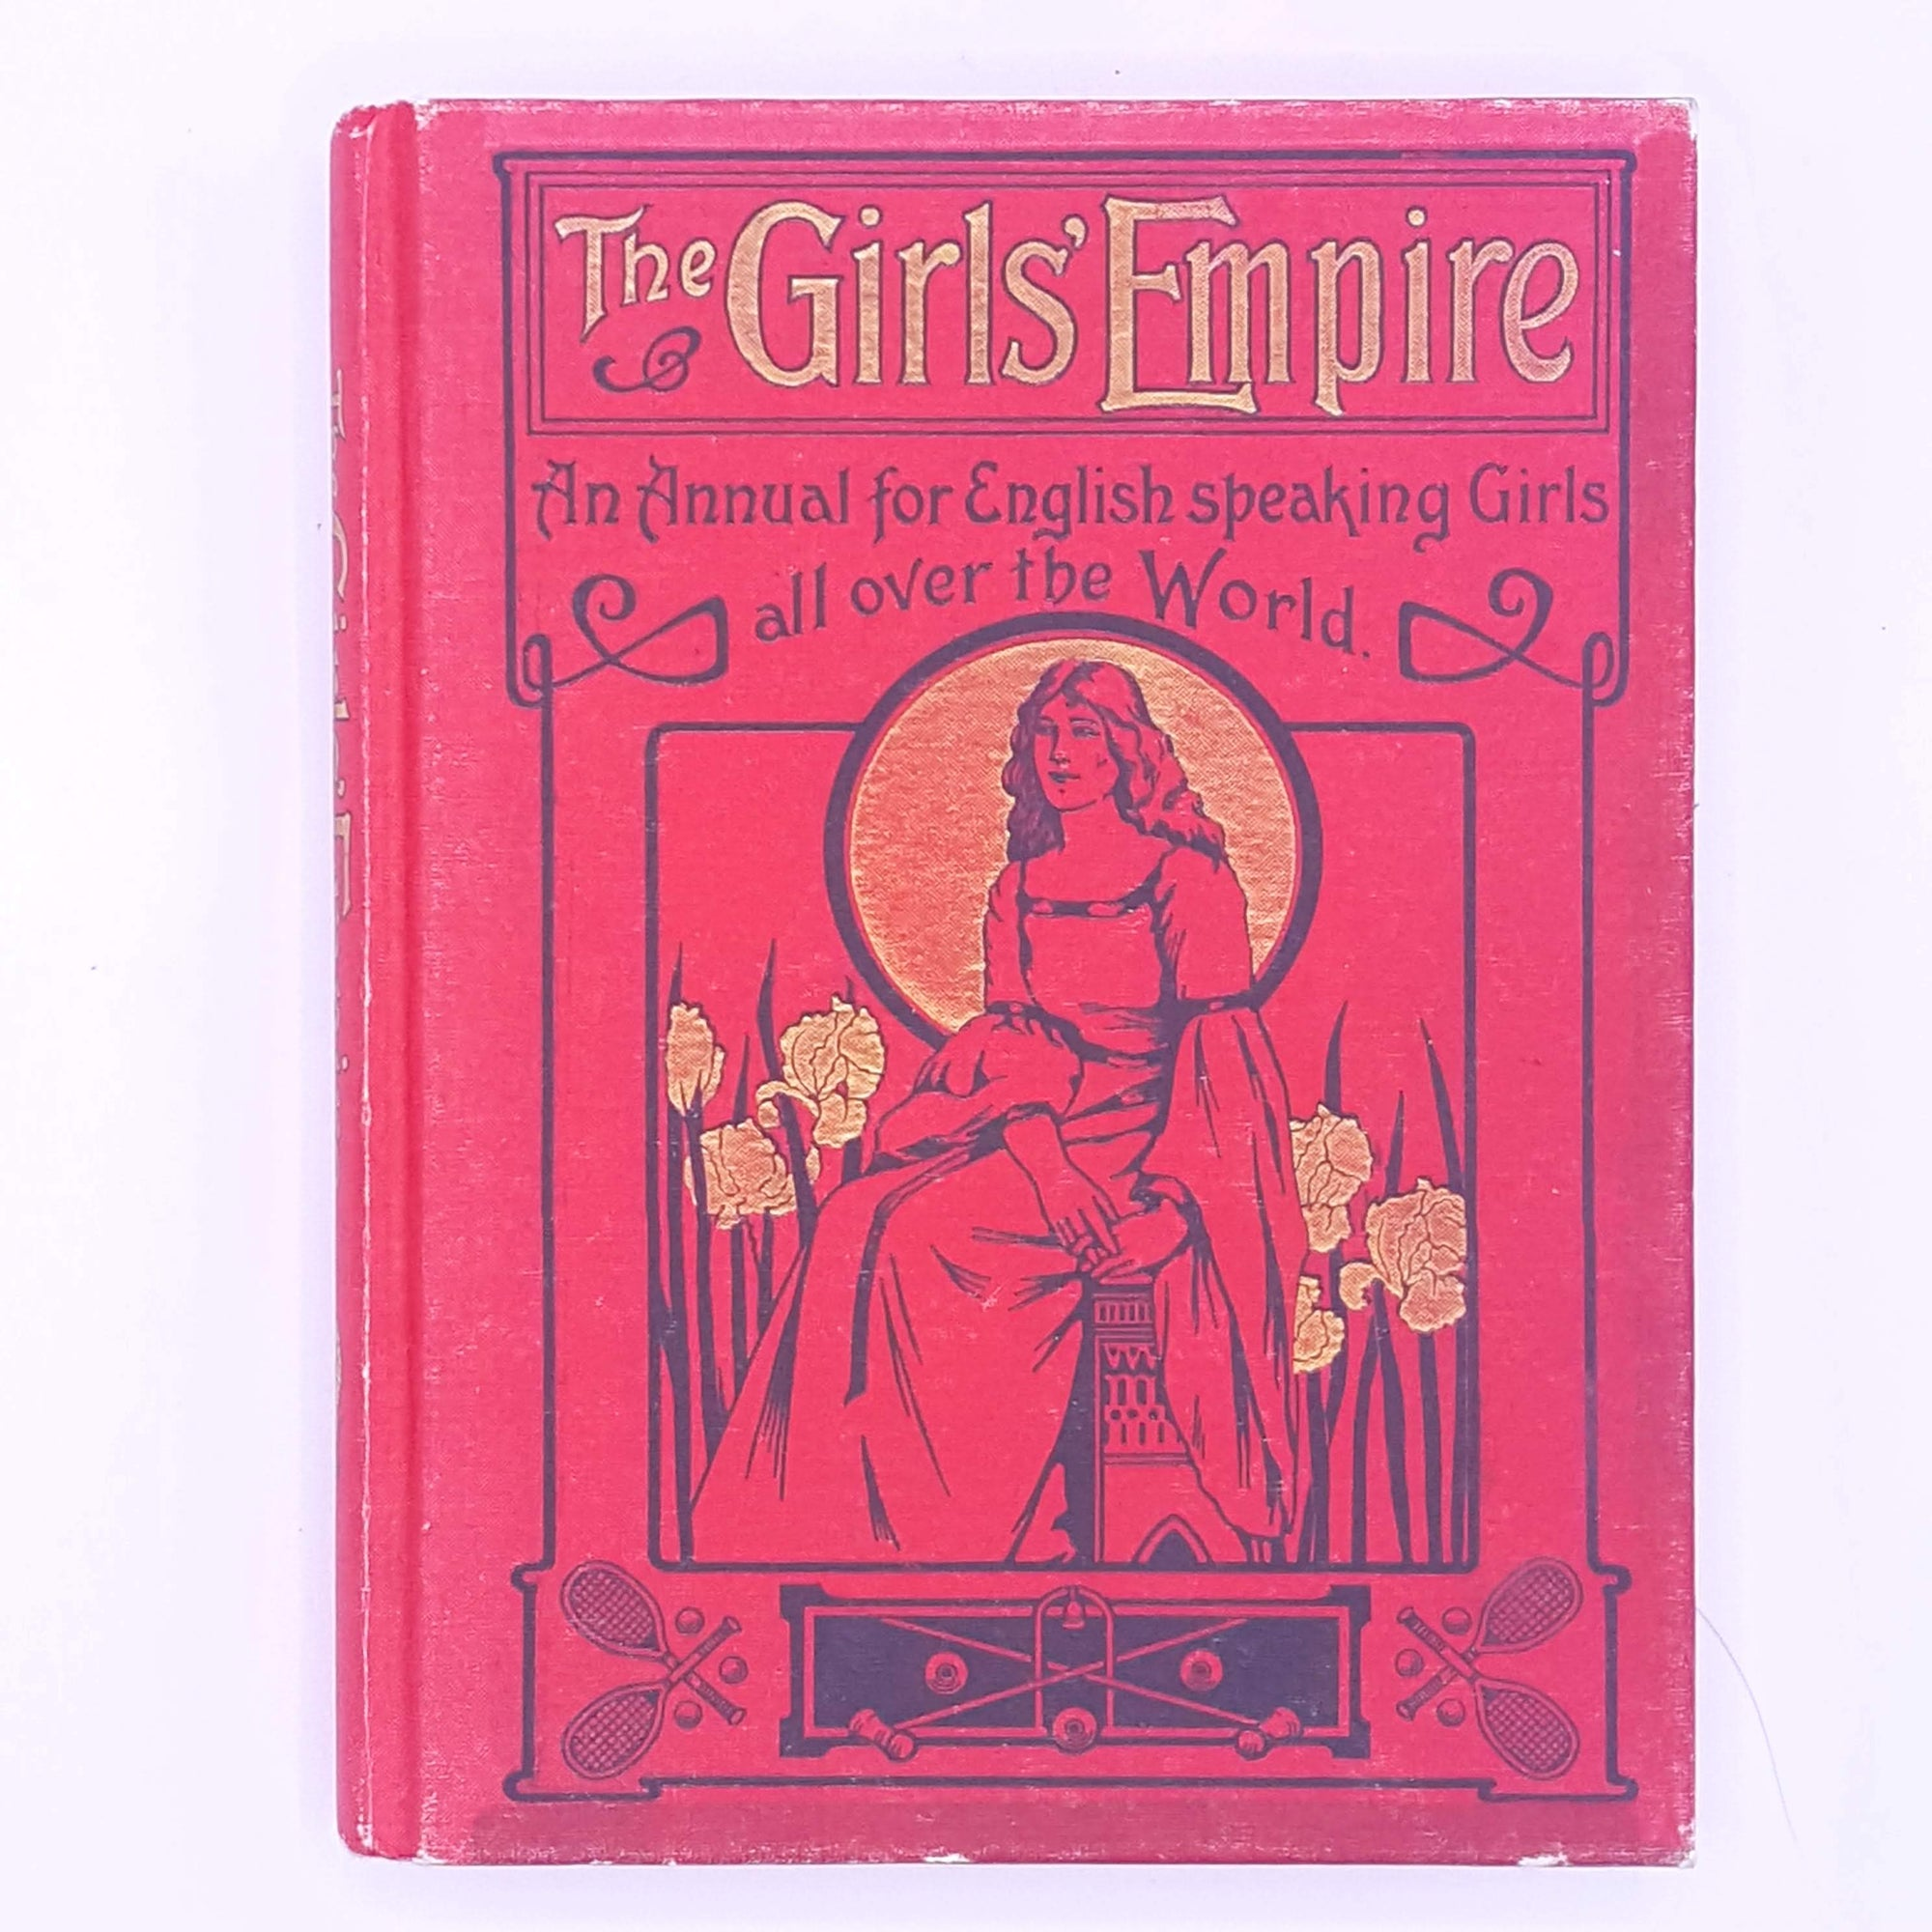 antique-history-classic-books-Christmas-vintage-patterned-the-girls-empire-country-house-library-feminism-for-her-women-old-thrift-christmas-gifts-decorative-